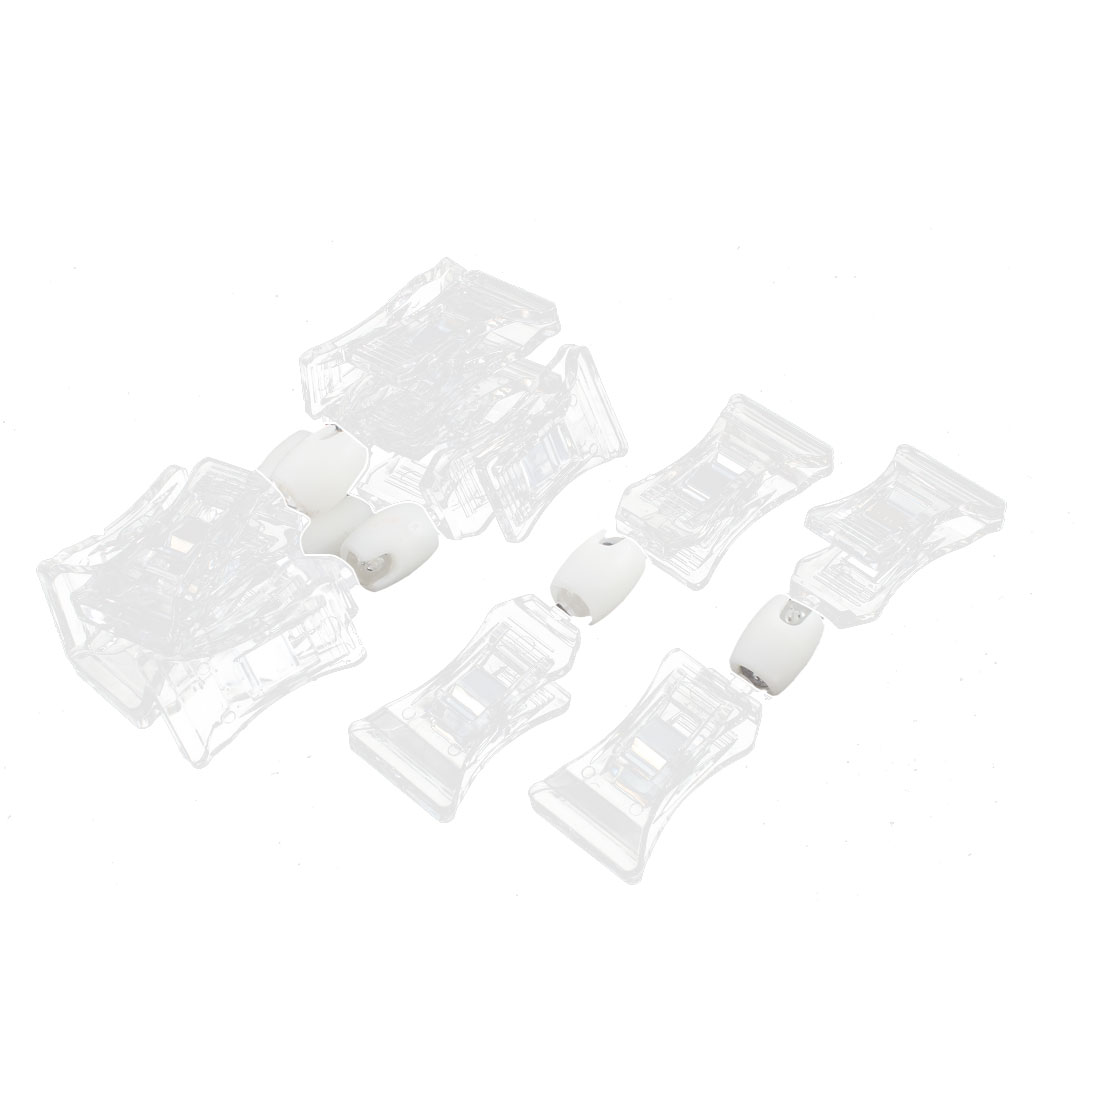 4Pcs Clear Double Plastic Clips Pop Sign Card Advertising Display Holder